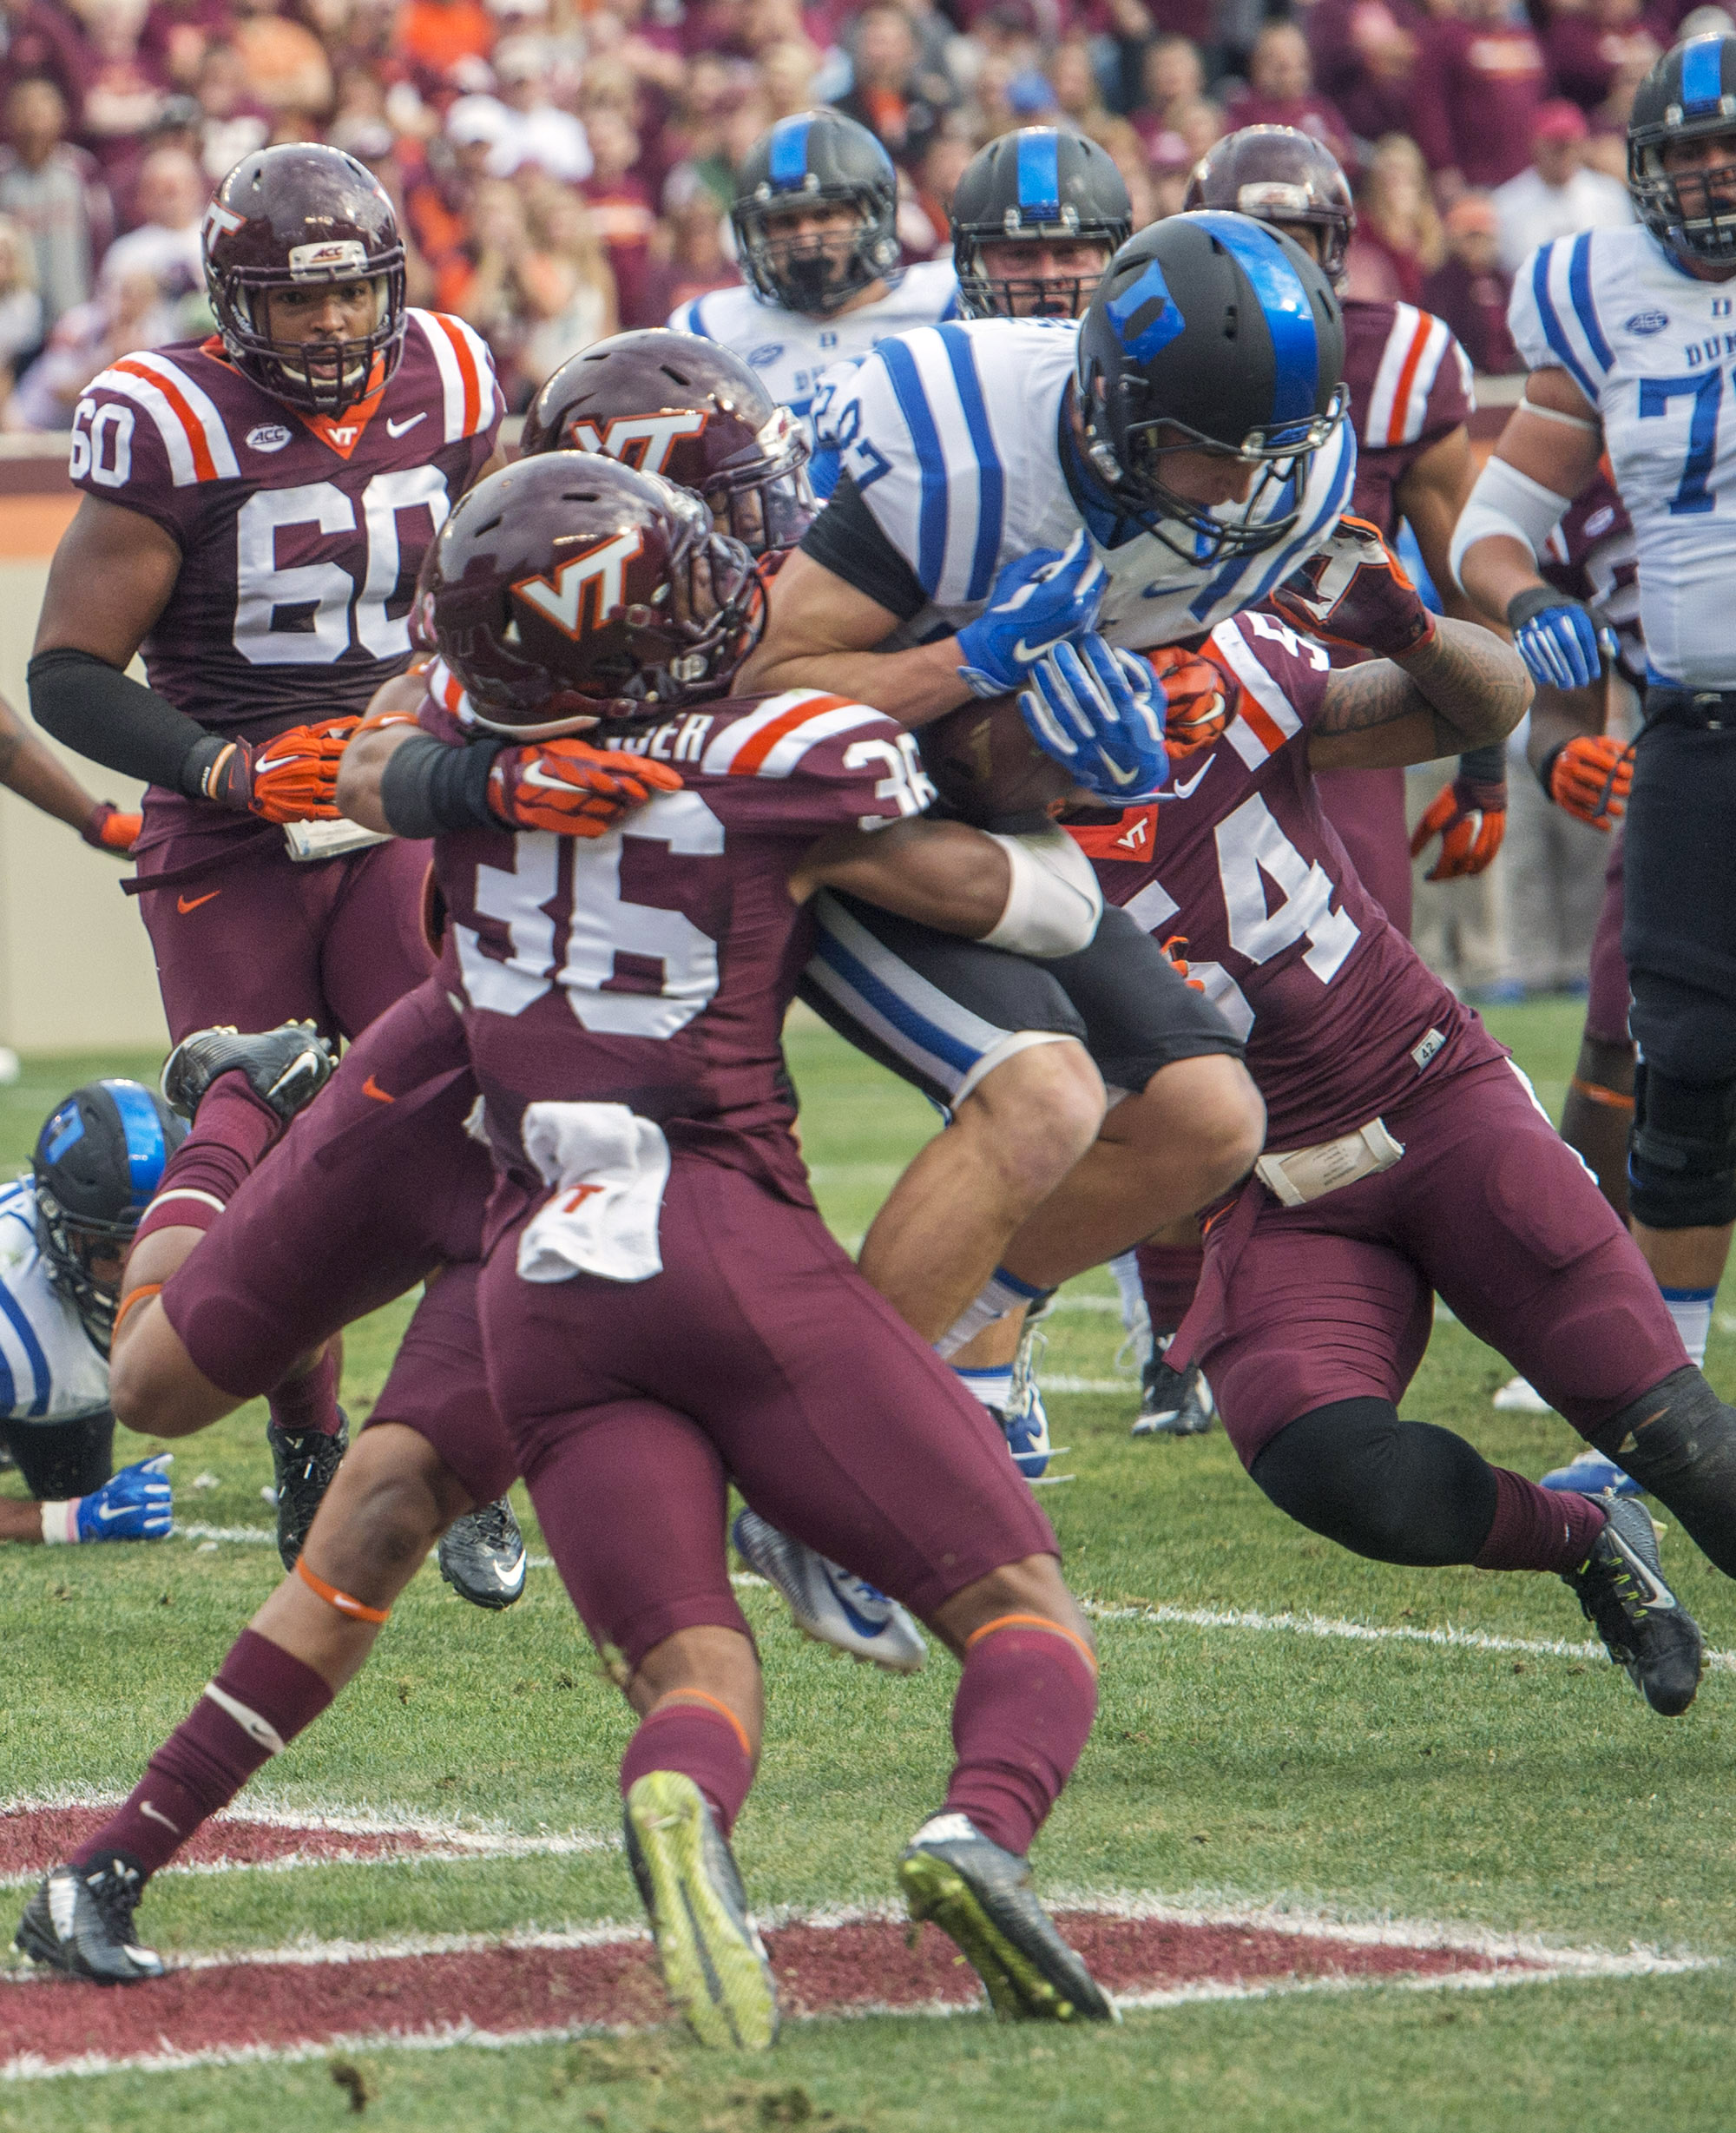 Duke's Max McCaffrey (87) makes a touchdown catch in the end zone between Virginia Tech defenders Adonis Alexander (36) and  Andrew Matuapuoka (54) during the first half an NCAA college football game against Duke's, Saturday, Oct. 24, 2015, at Lane Stadiu